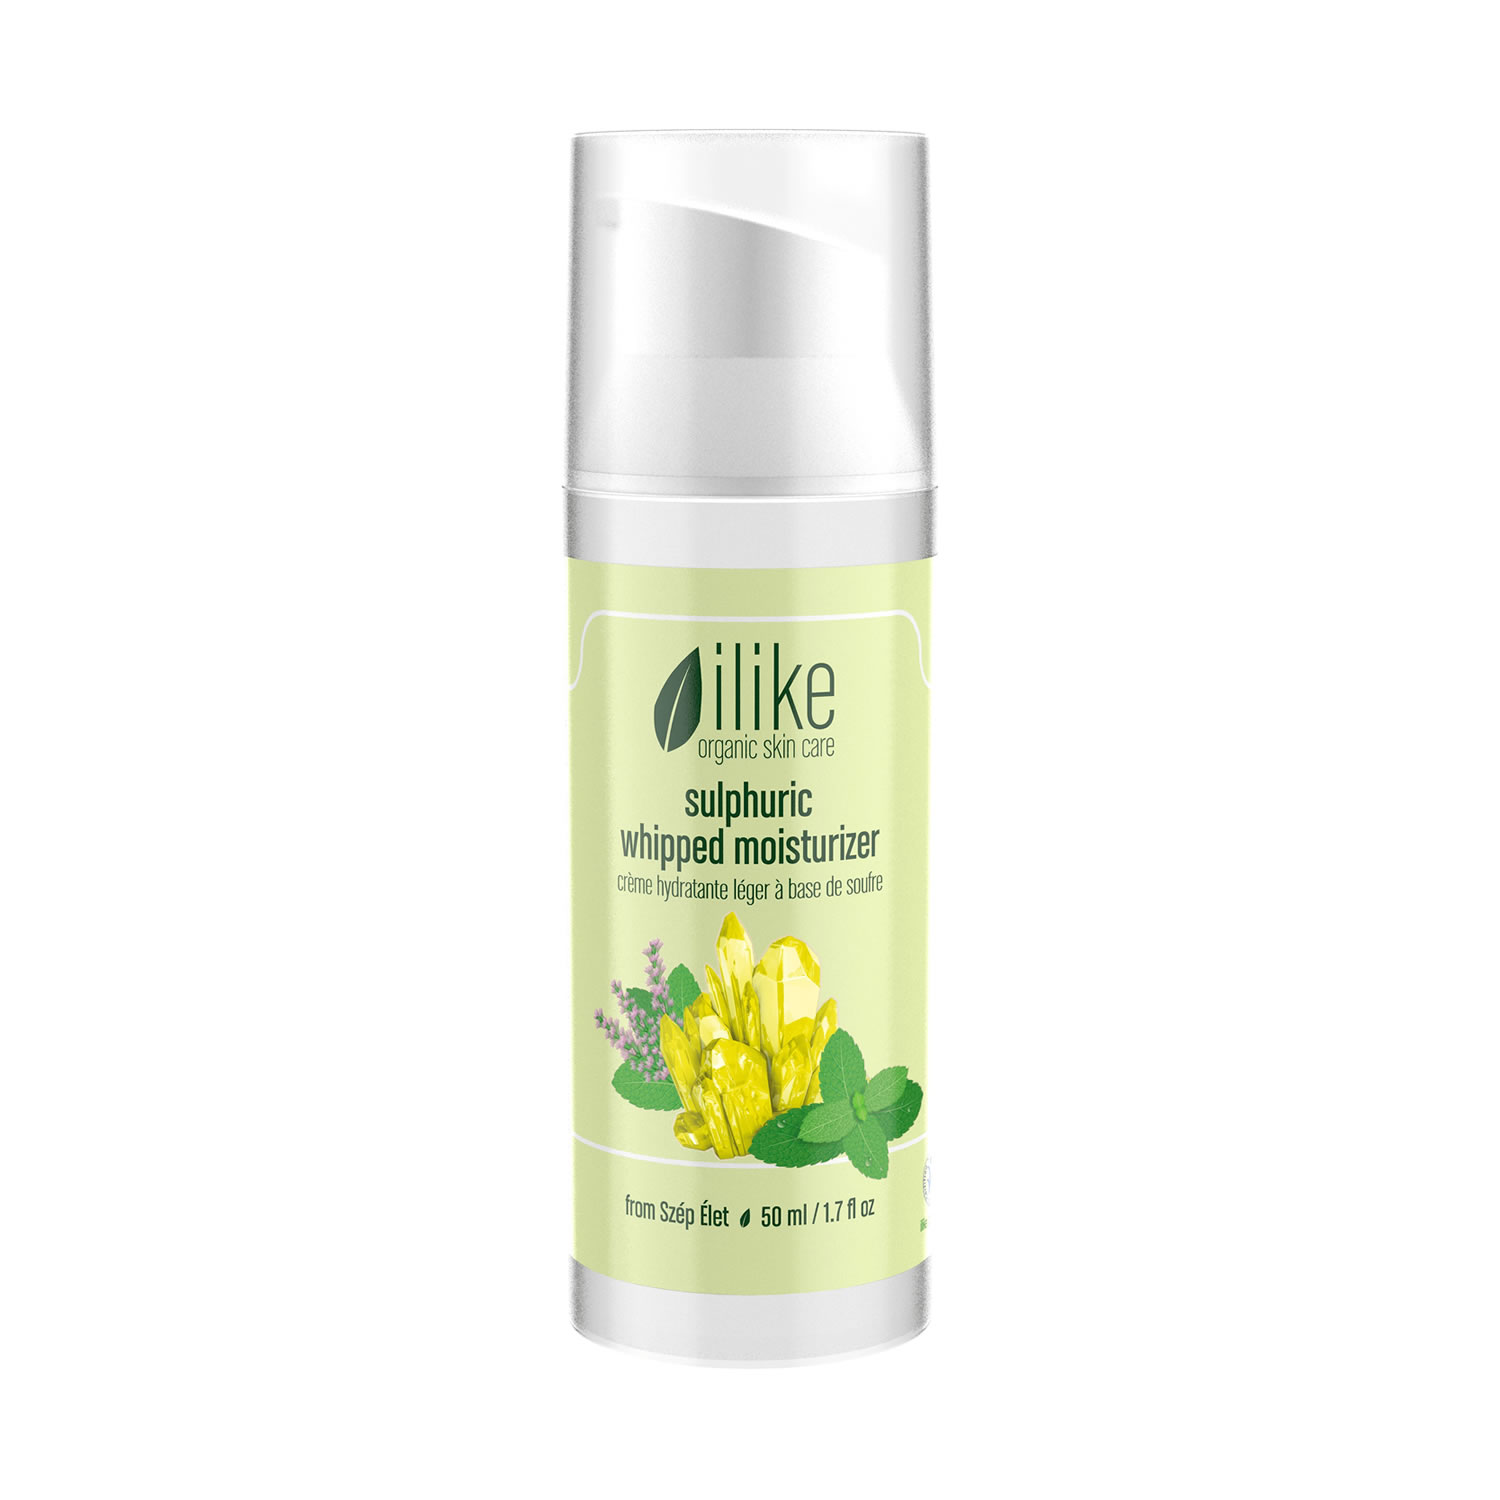 ilike organic skincare sulphuric whipped moisturizer (50 ml / 1.7 fl oz)